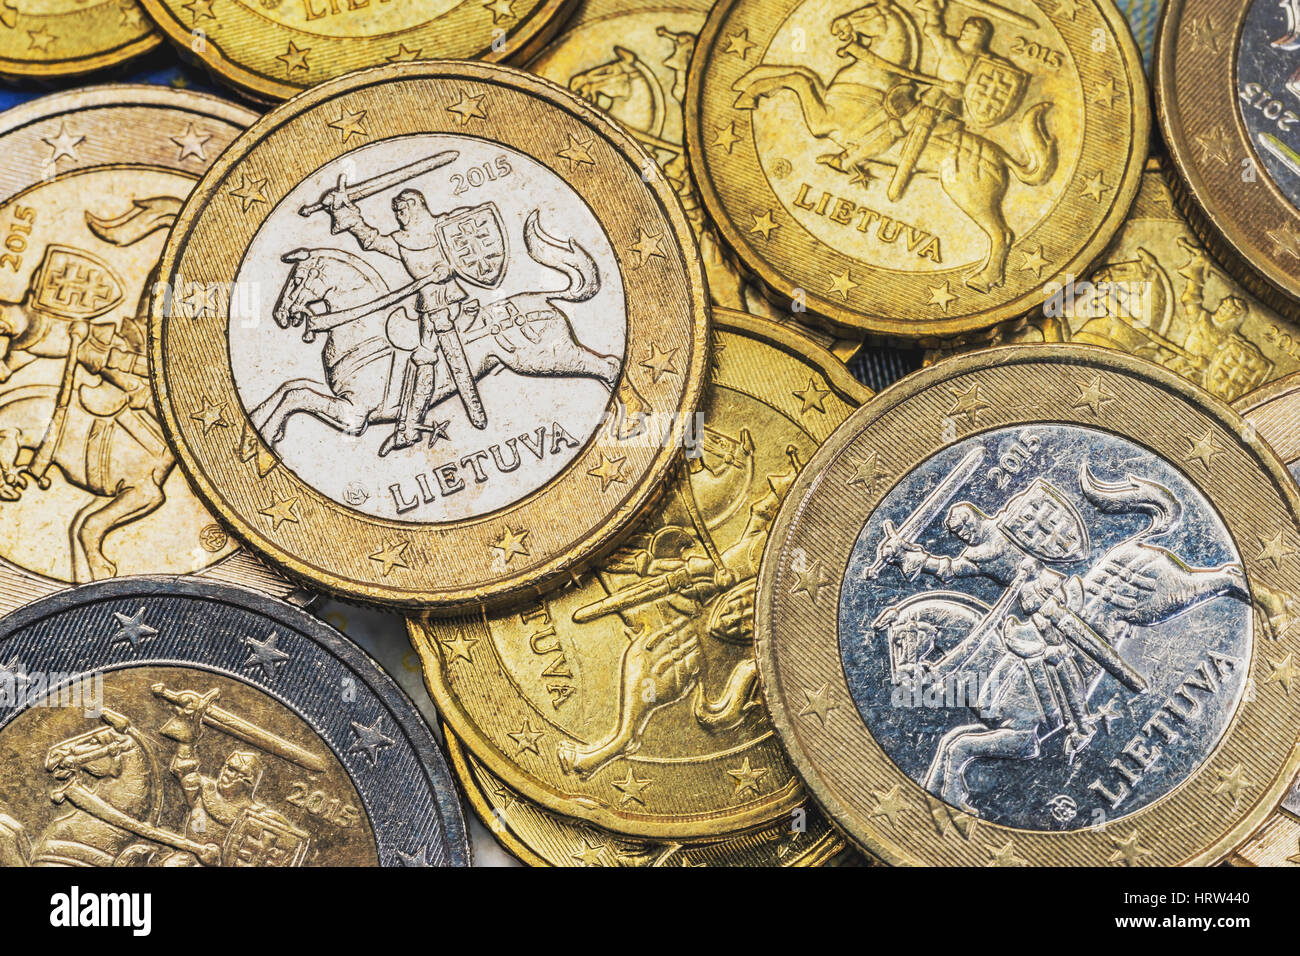 Many euro coins from Lithuania - Stock Image